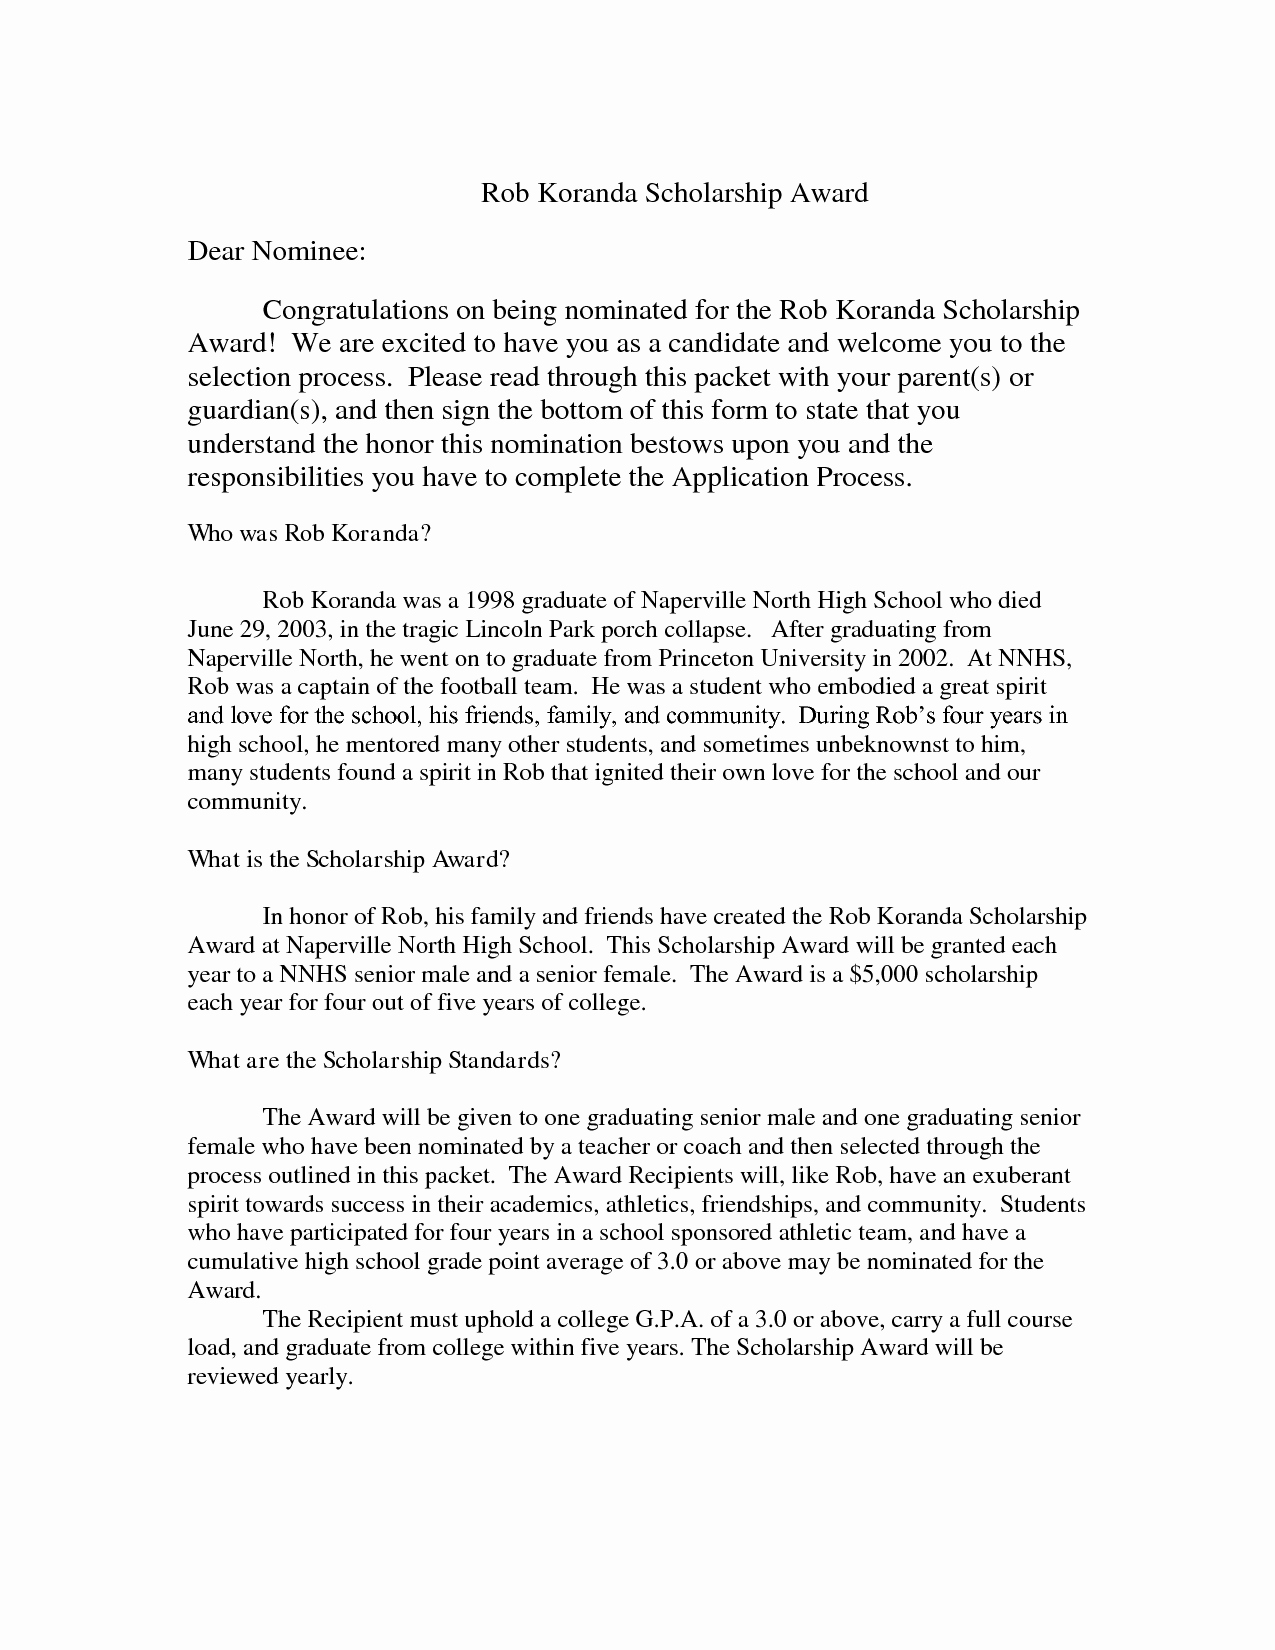 Grad School Letter Of Recommendation Elegant Re Mendation Letter for Graduate School Bbq Grill Recipes